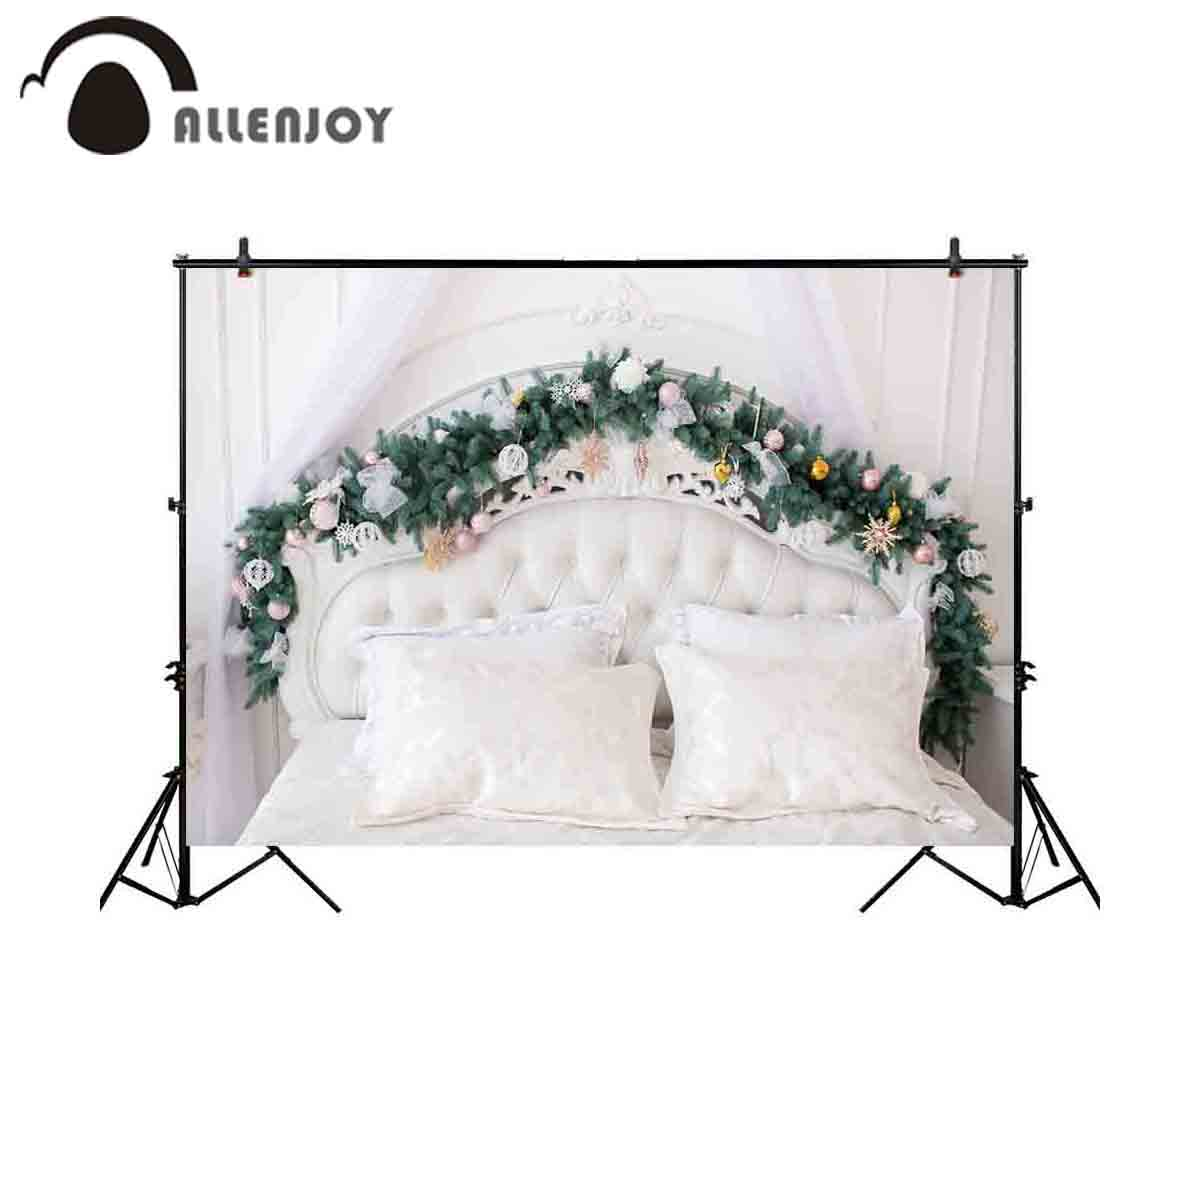 Allenjoy photography background Christmas headboard tufted pine tree leaf backdrop photocall photo studio photobooth fabric allenjoy thin vinyl cloth photography backdrop blue background for studio photo pure color photocall wedding backdrop mh 076